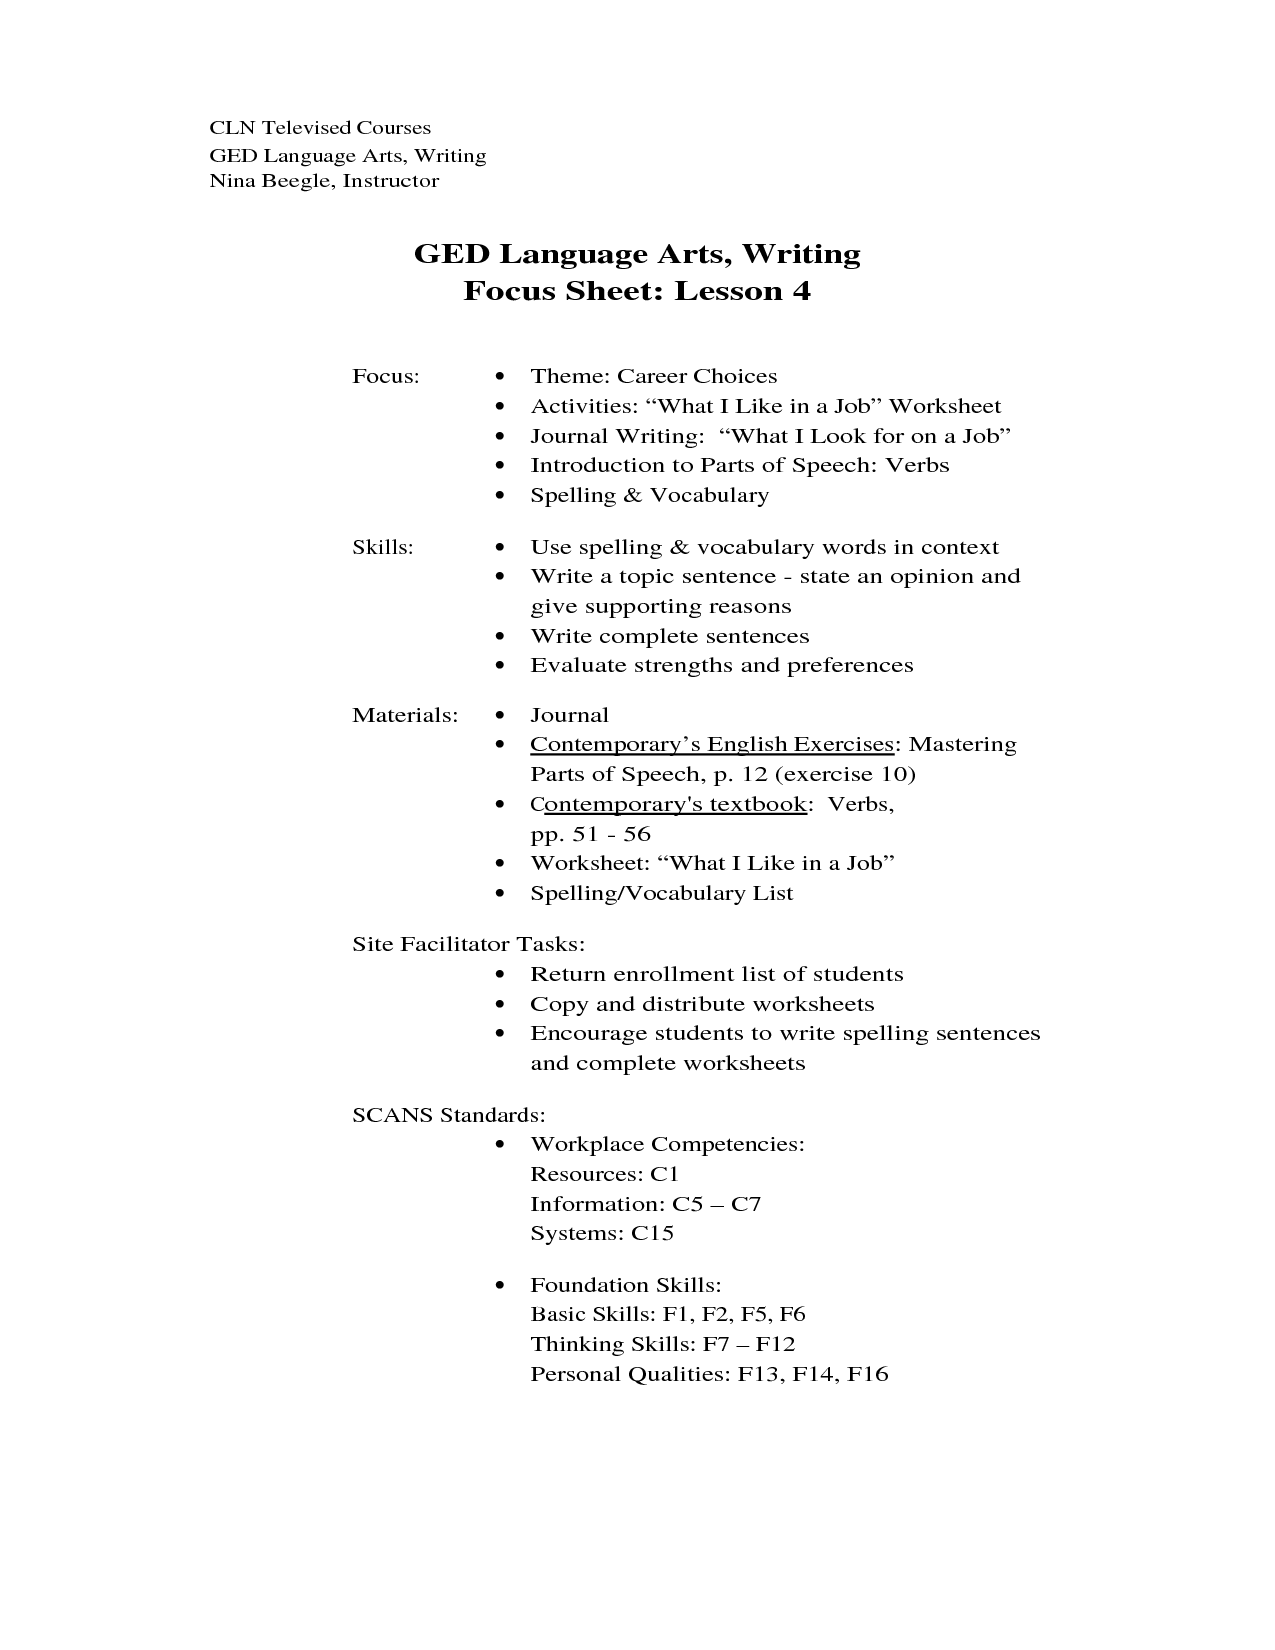 18 Best Images of GED English Worksheets